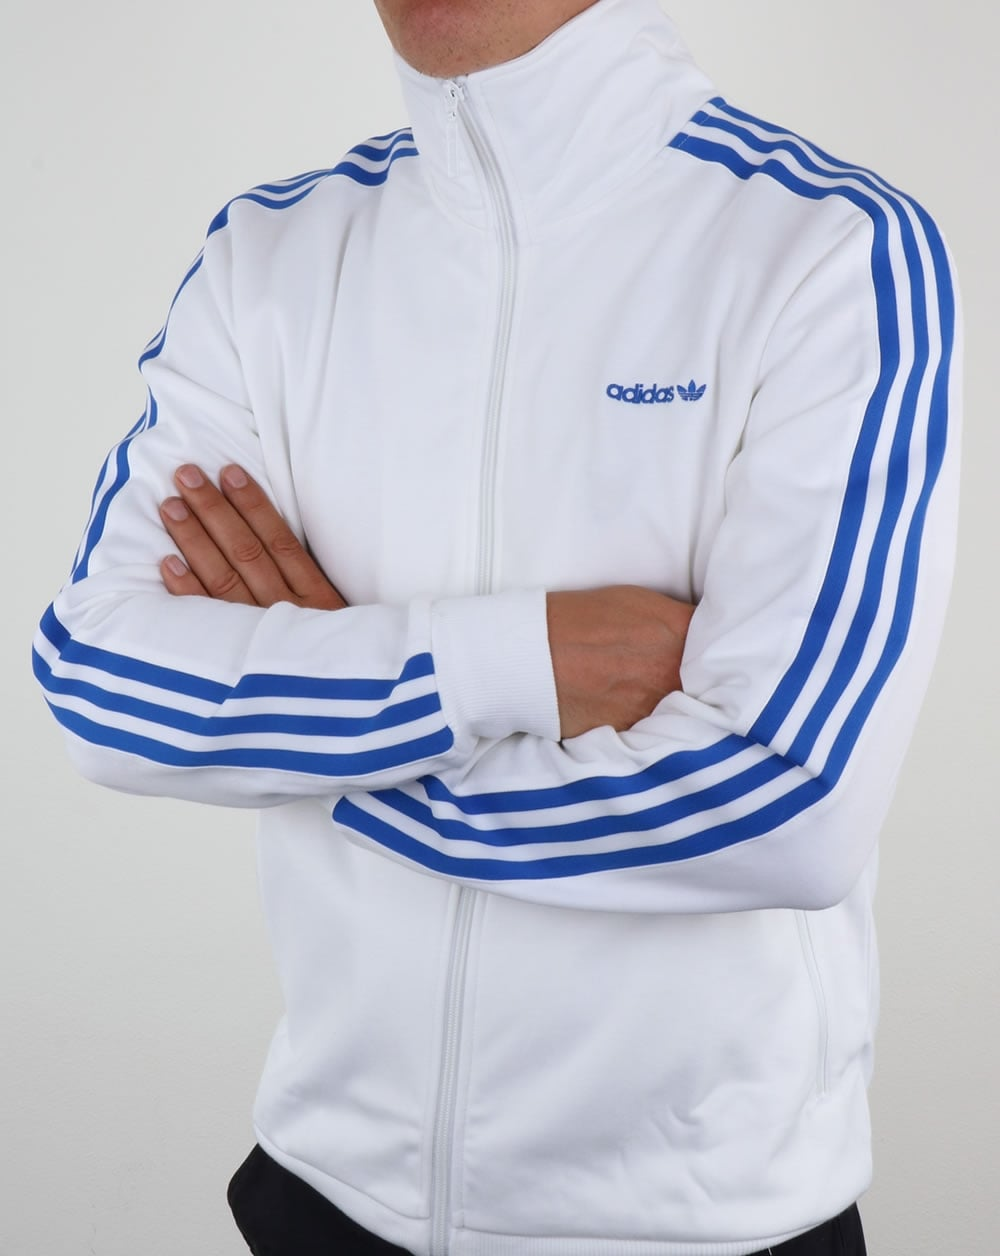 Beckenbauer Track White Blue tracksuit originals Jacket Adidas Top OZwxd5qO6 b697541fc963